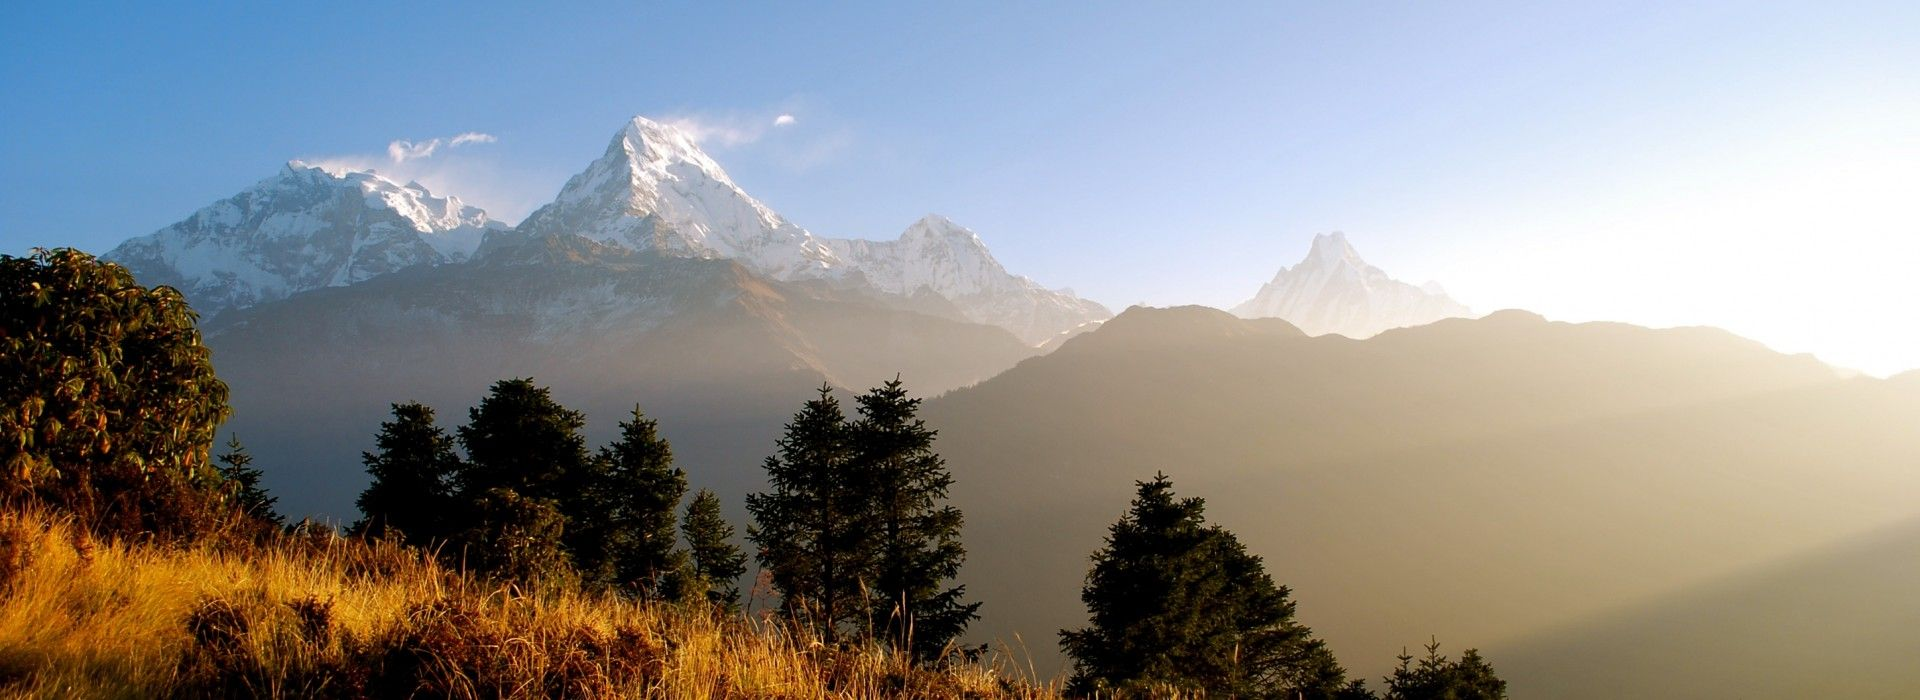 Sightseeing Tours in Pokhara